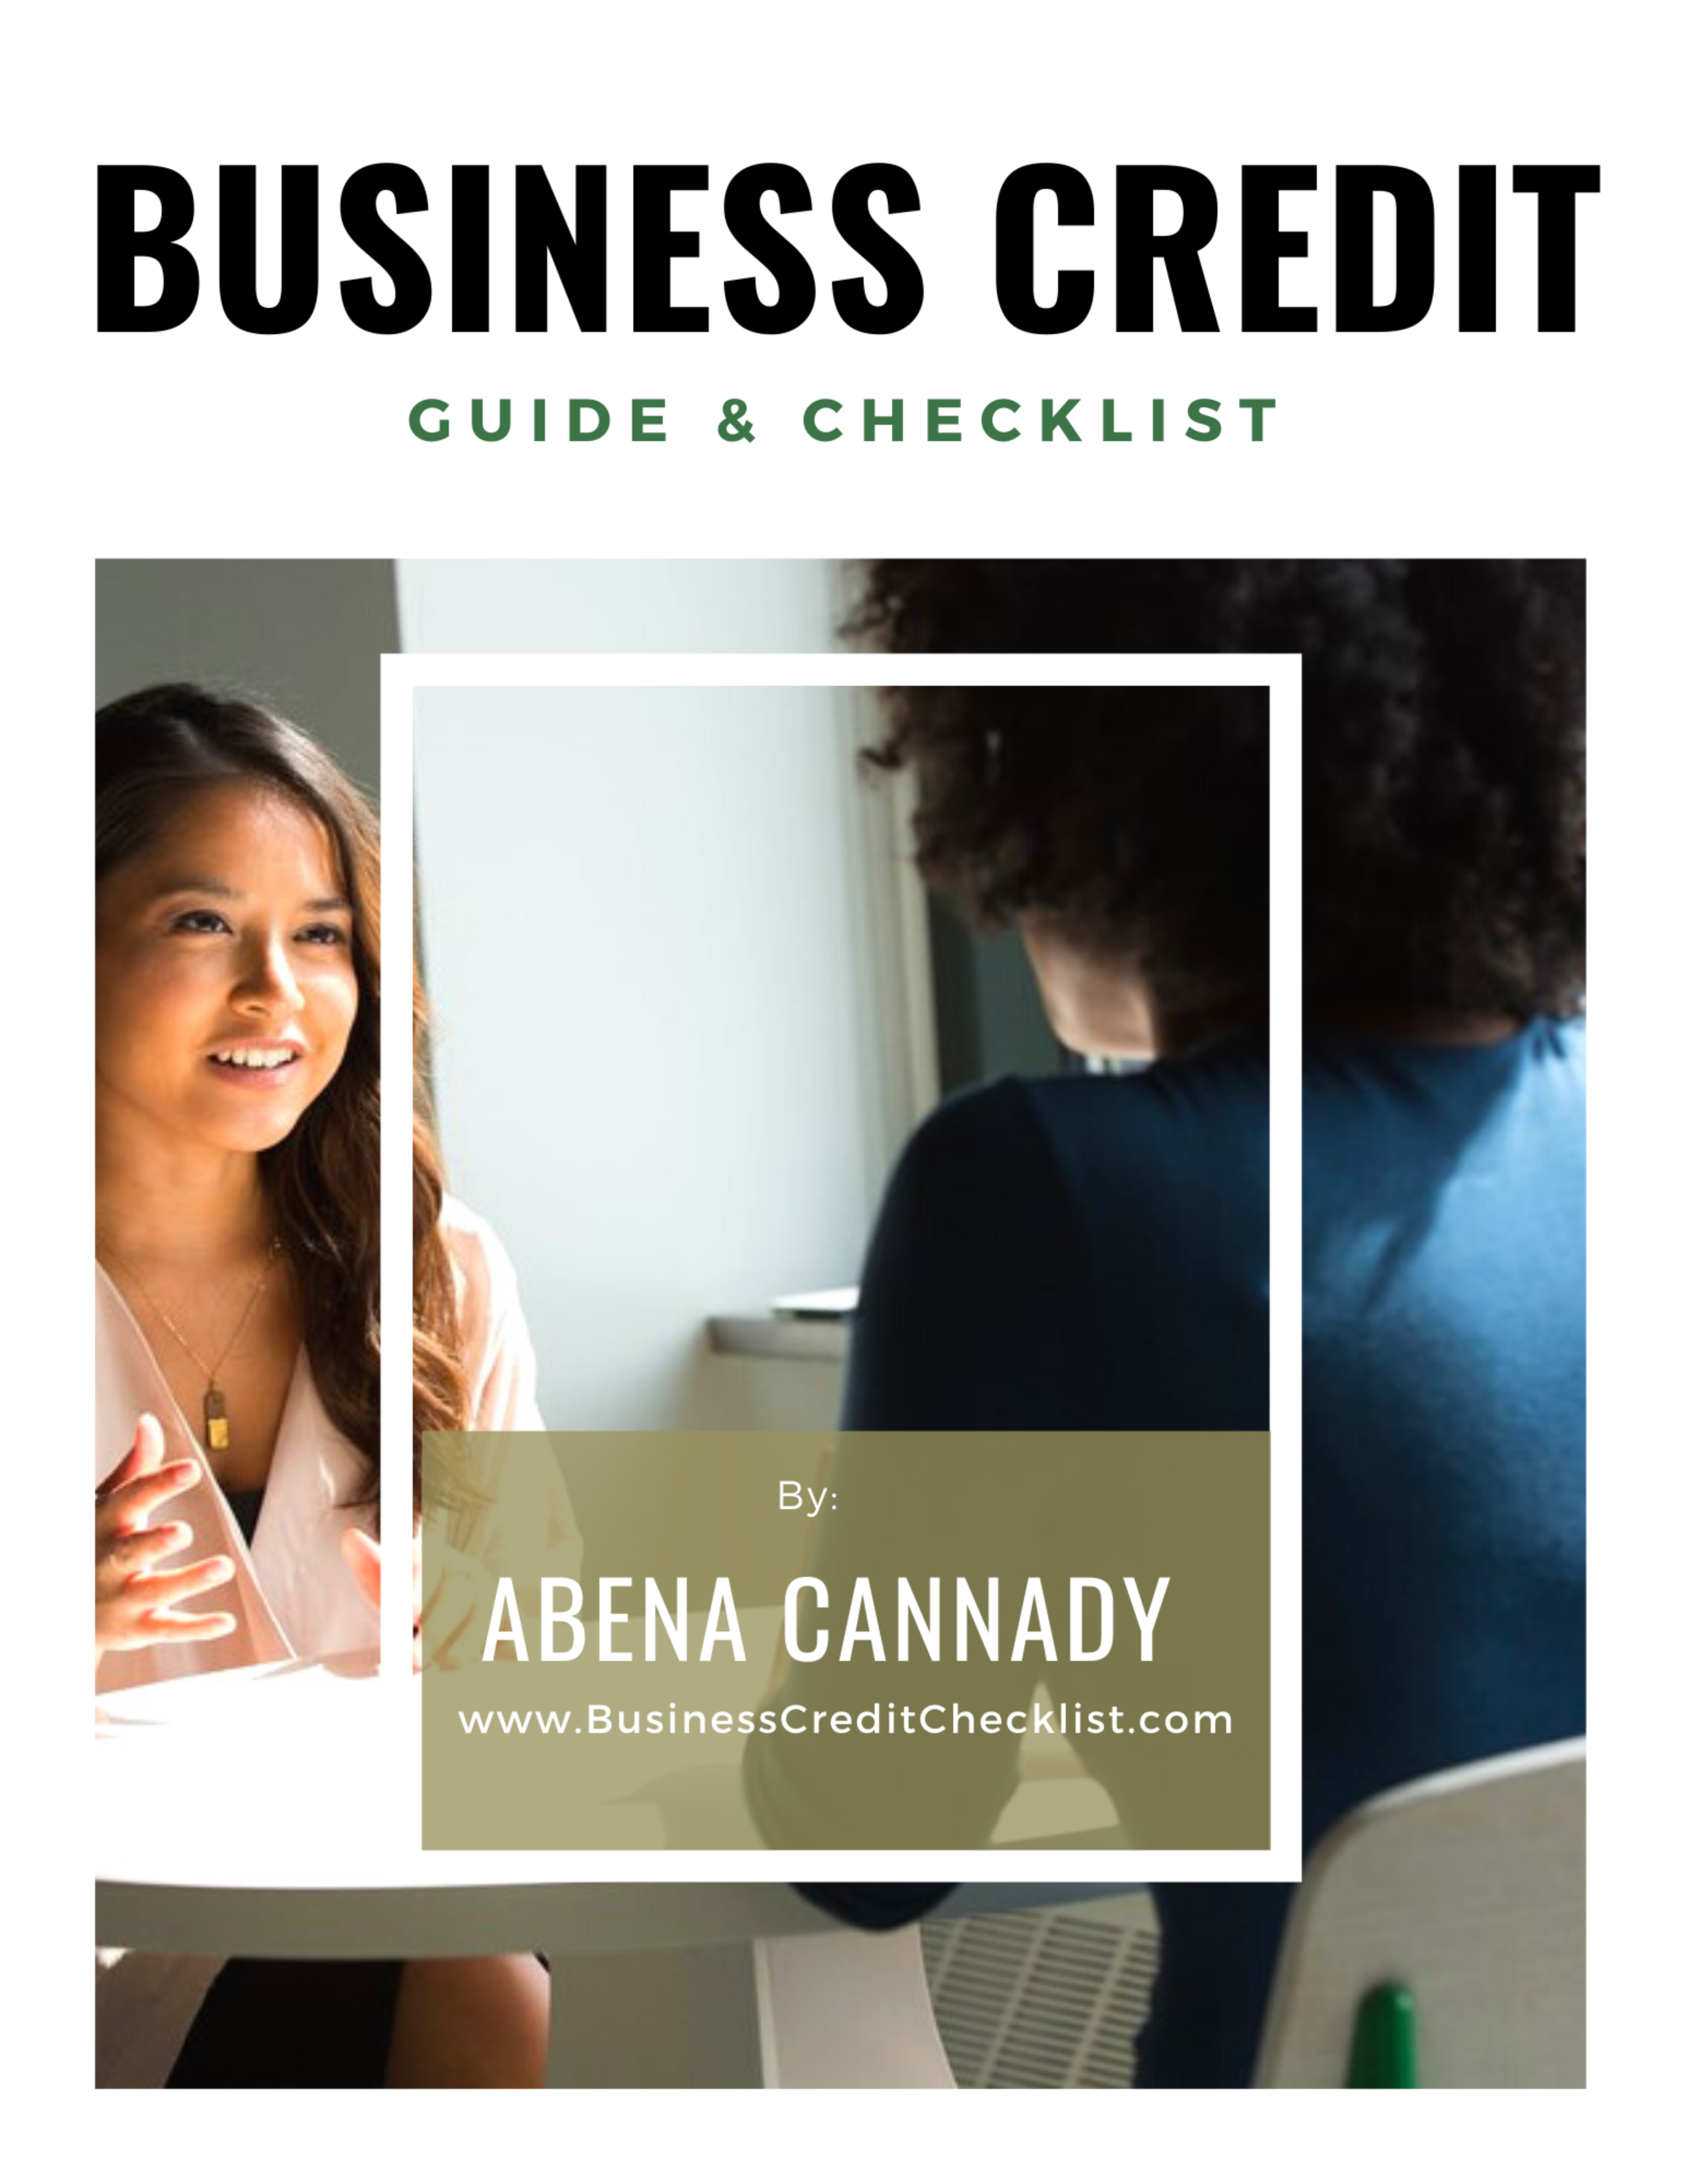 Business Credit Guide and Checklist